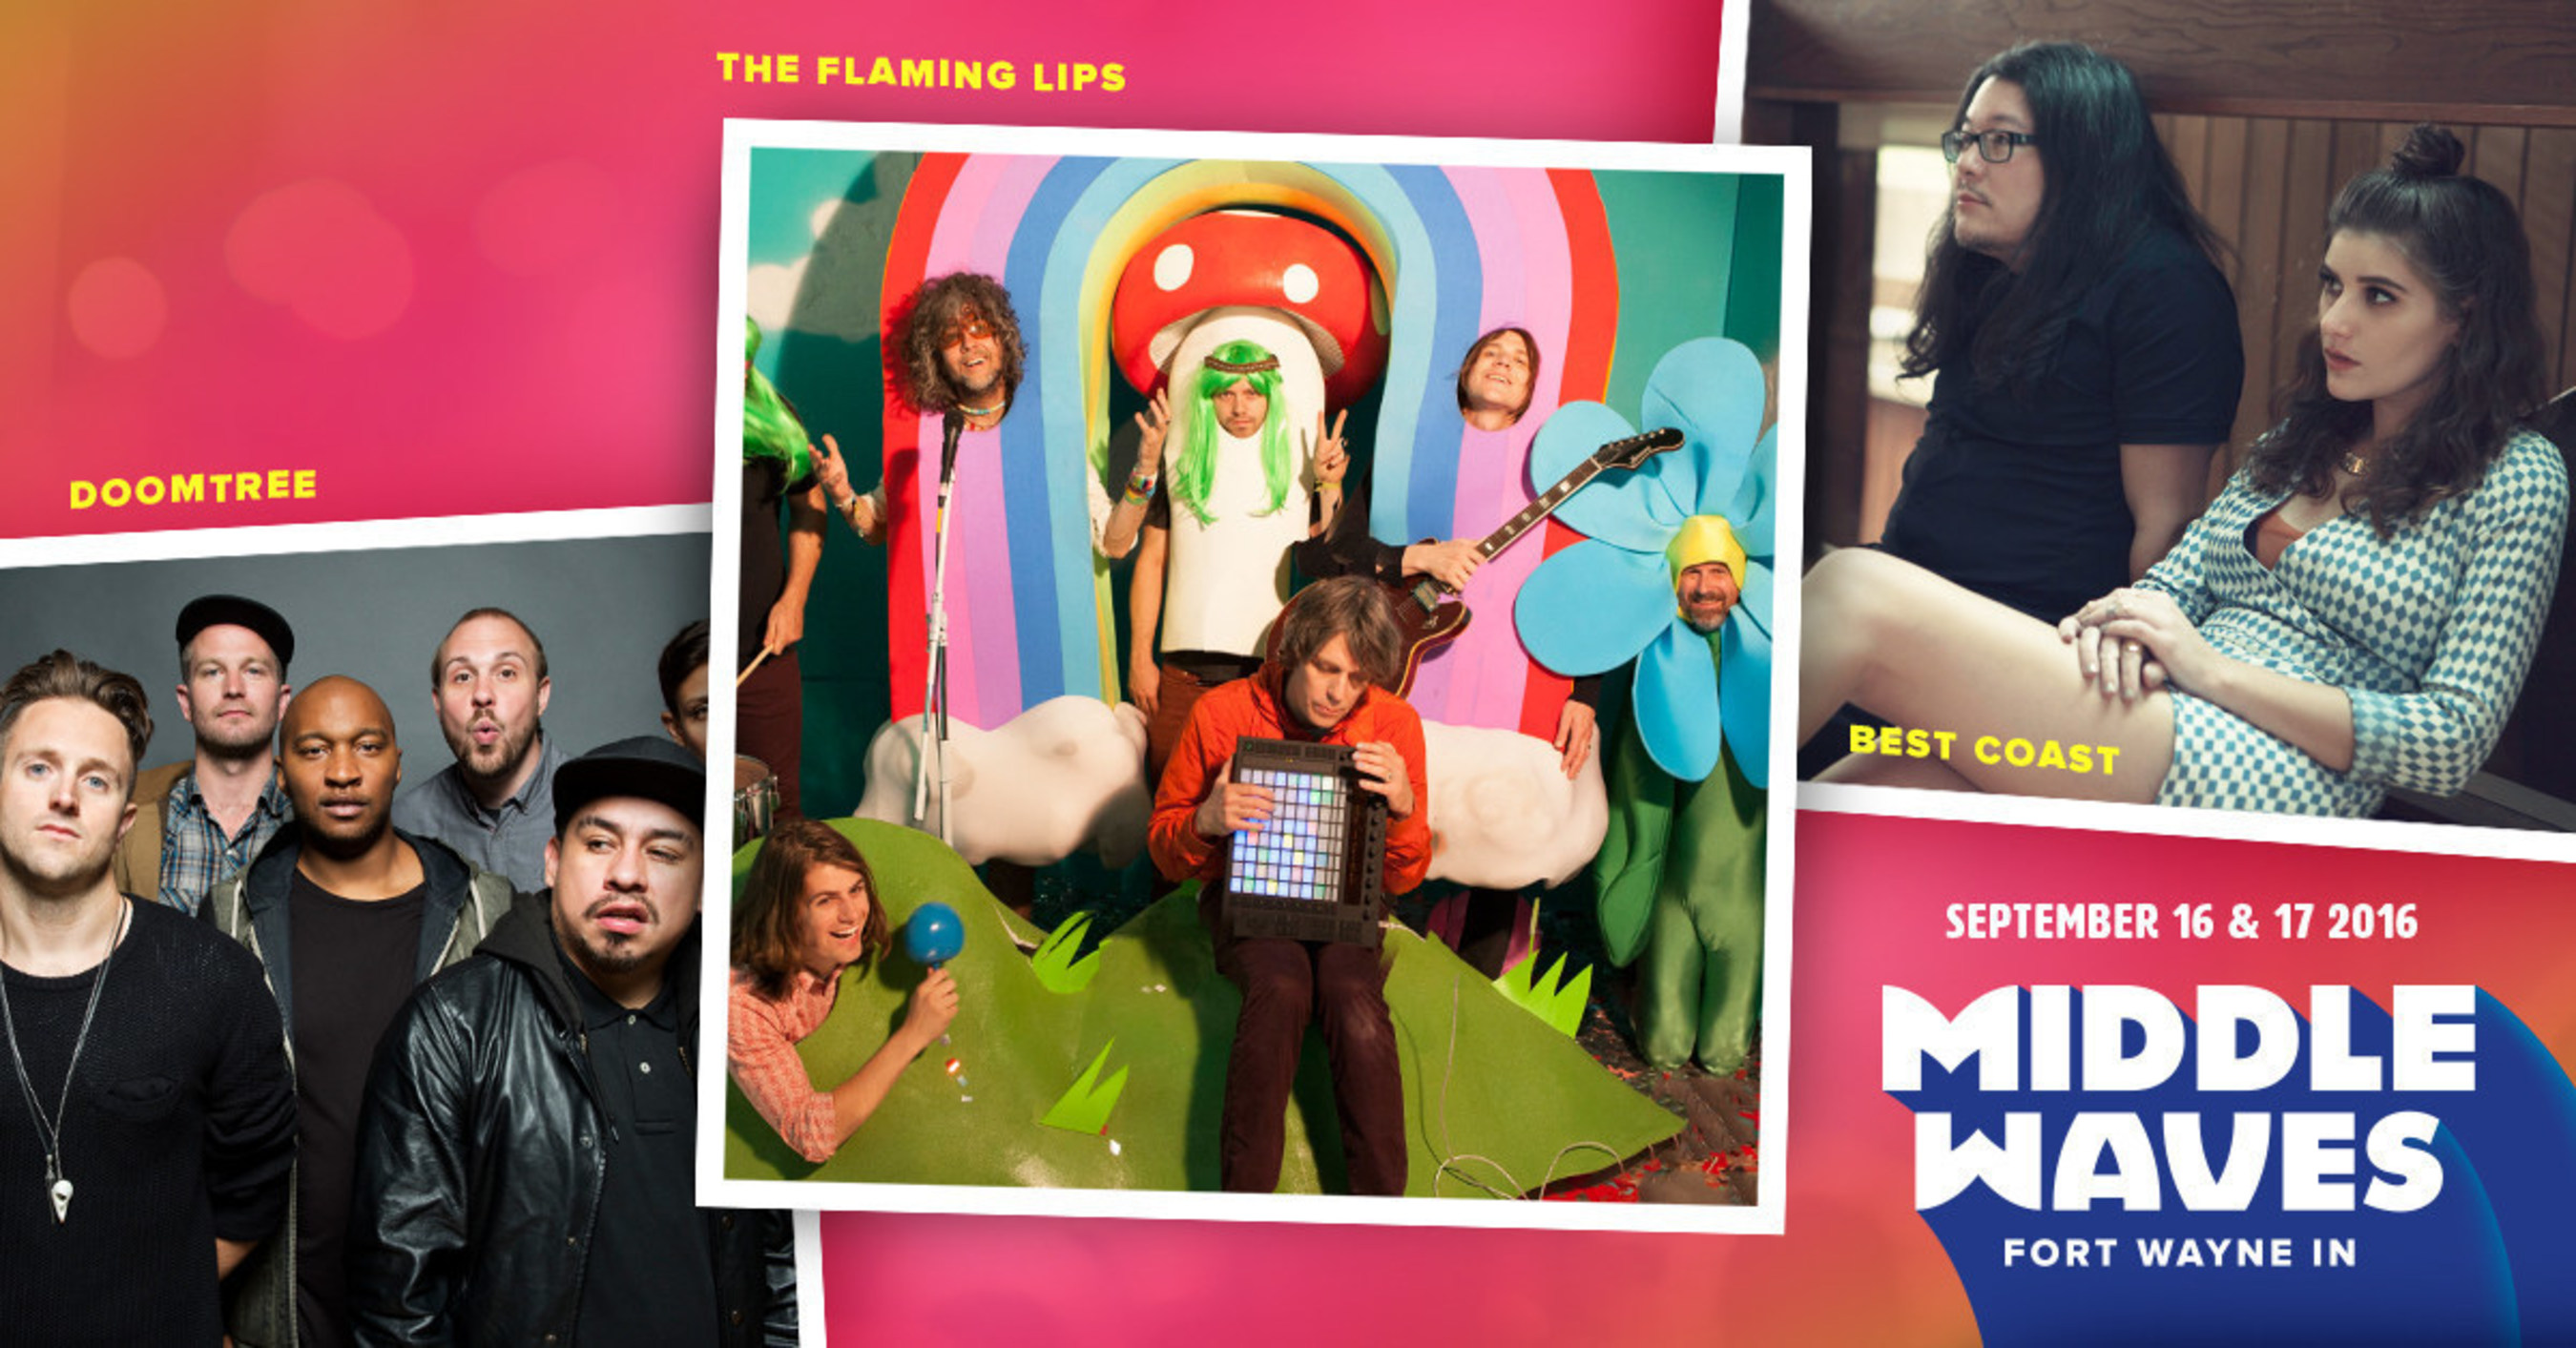 The Flaming Lips, Best Coast and 20 more live acts--Middle Waves is your favorite new fest!Middle Waves, Indiana's first-ever destination music festival, will take place on the St. Marys riverfront in downtown Fort Wayne's Headwaters Park on Friday and Saturday, September 16 and 17th, 2016. The all-ages festival will include two free community stages, interactive river and art activities, local food trucks and vendors, artists, culture-makers, VIP experiences, and more. For more information or to...